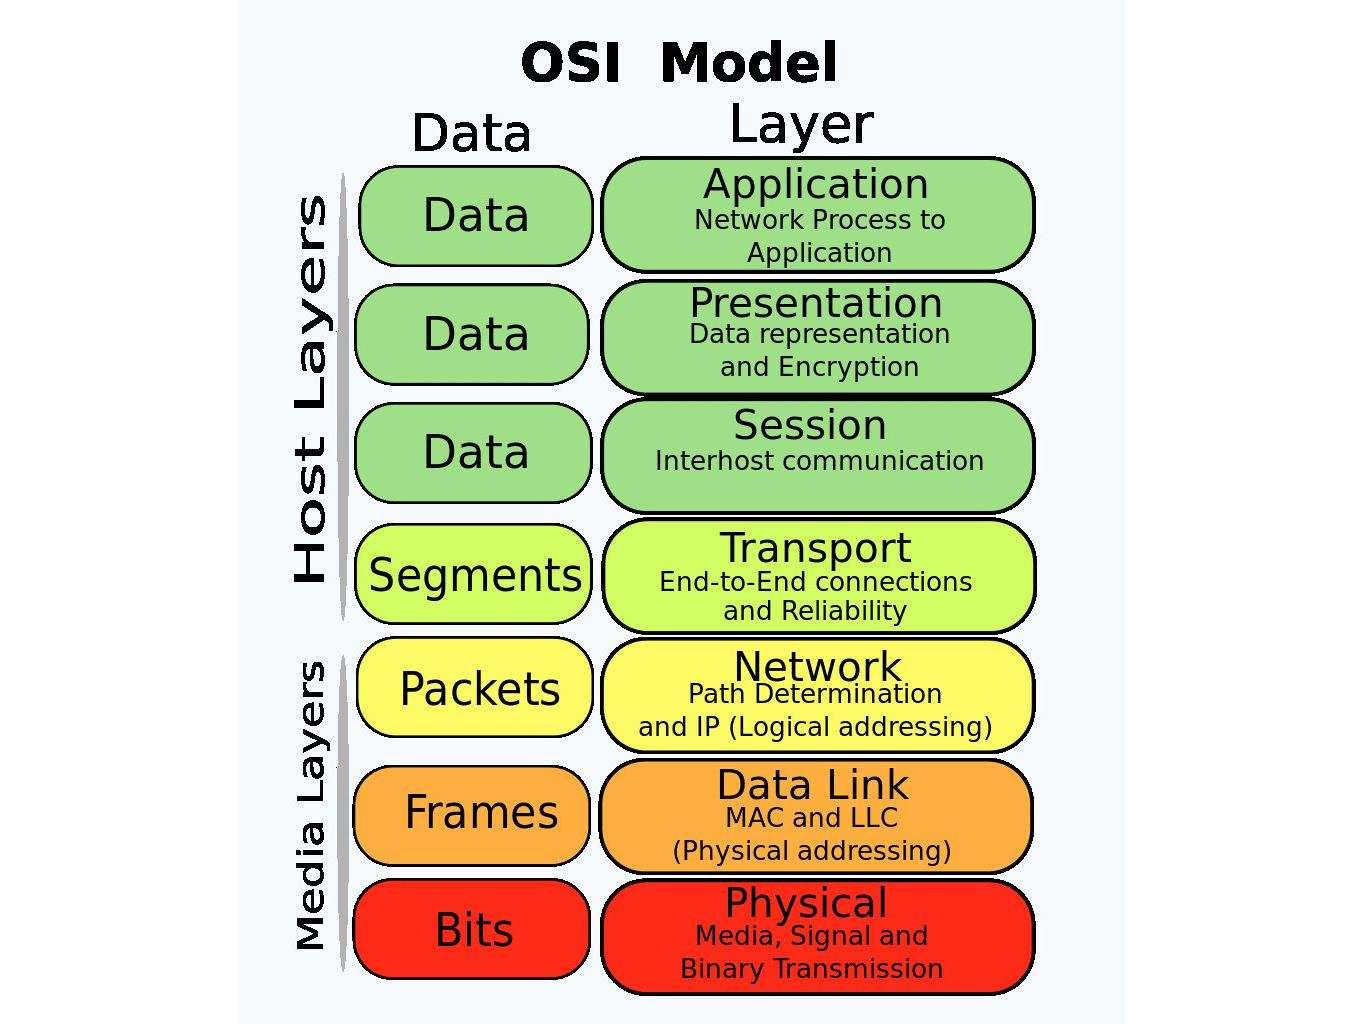 OSI Model Reference Guide (With Examples)